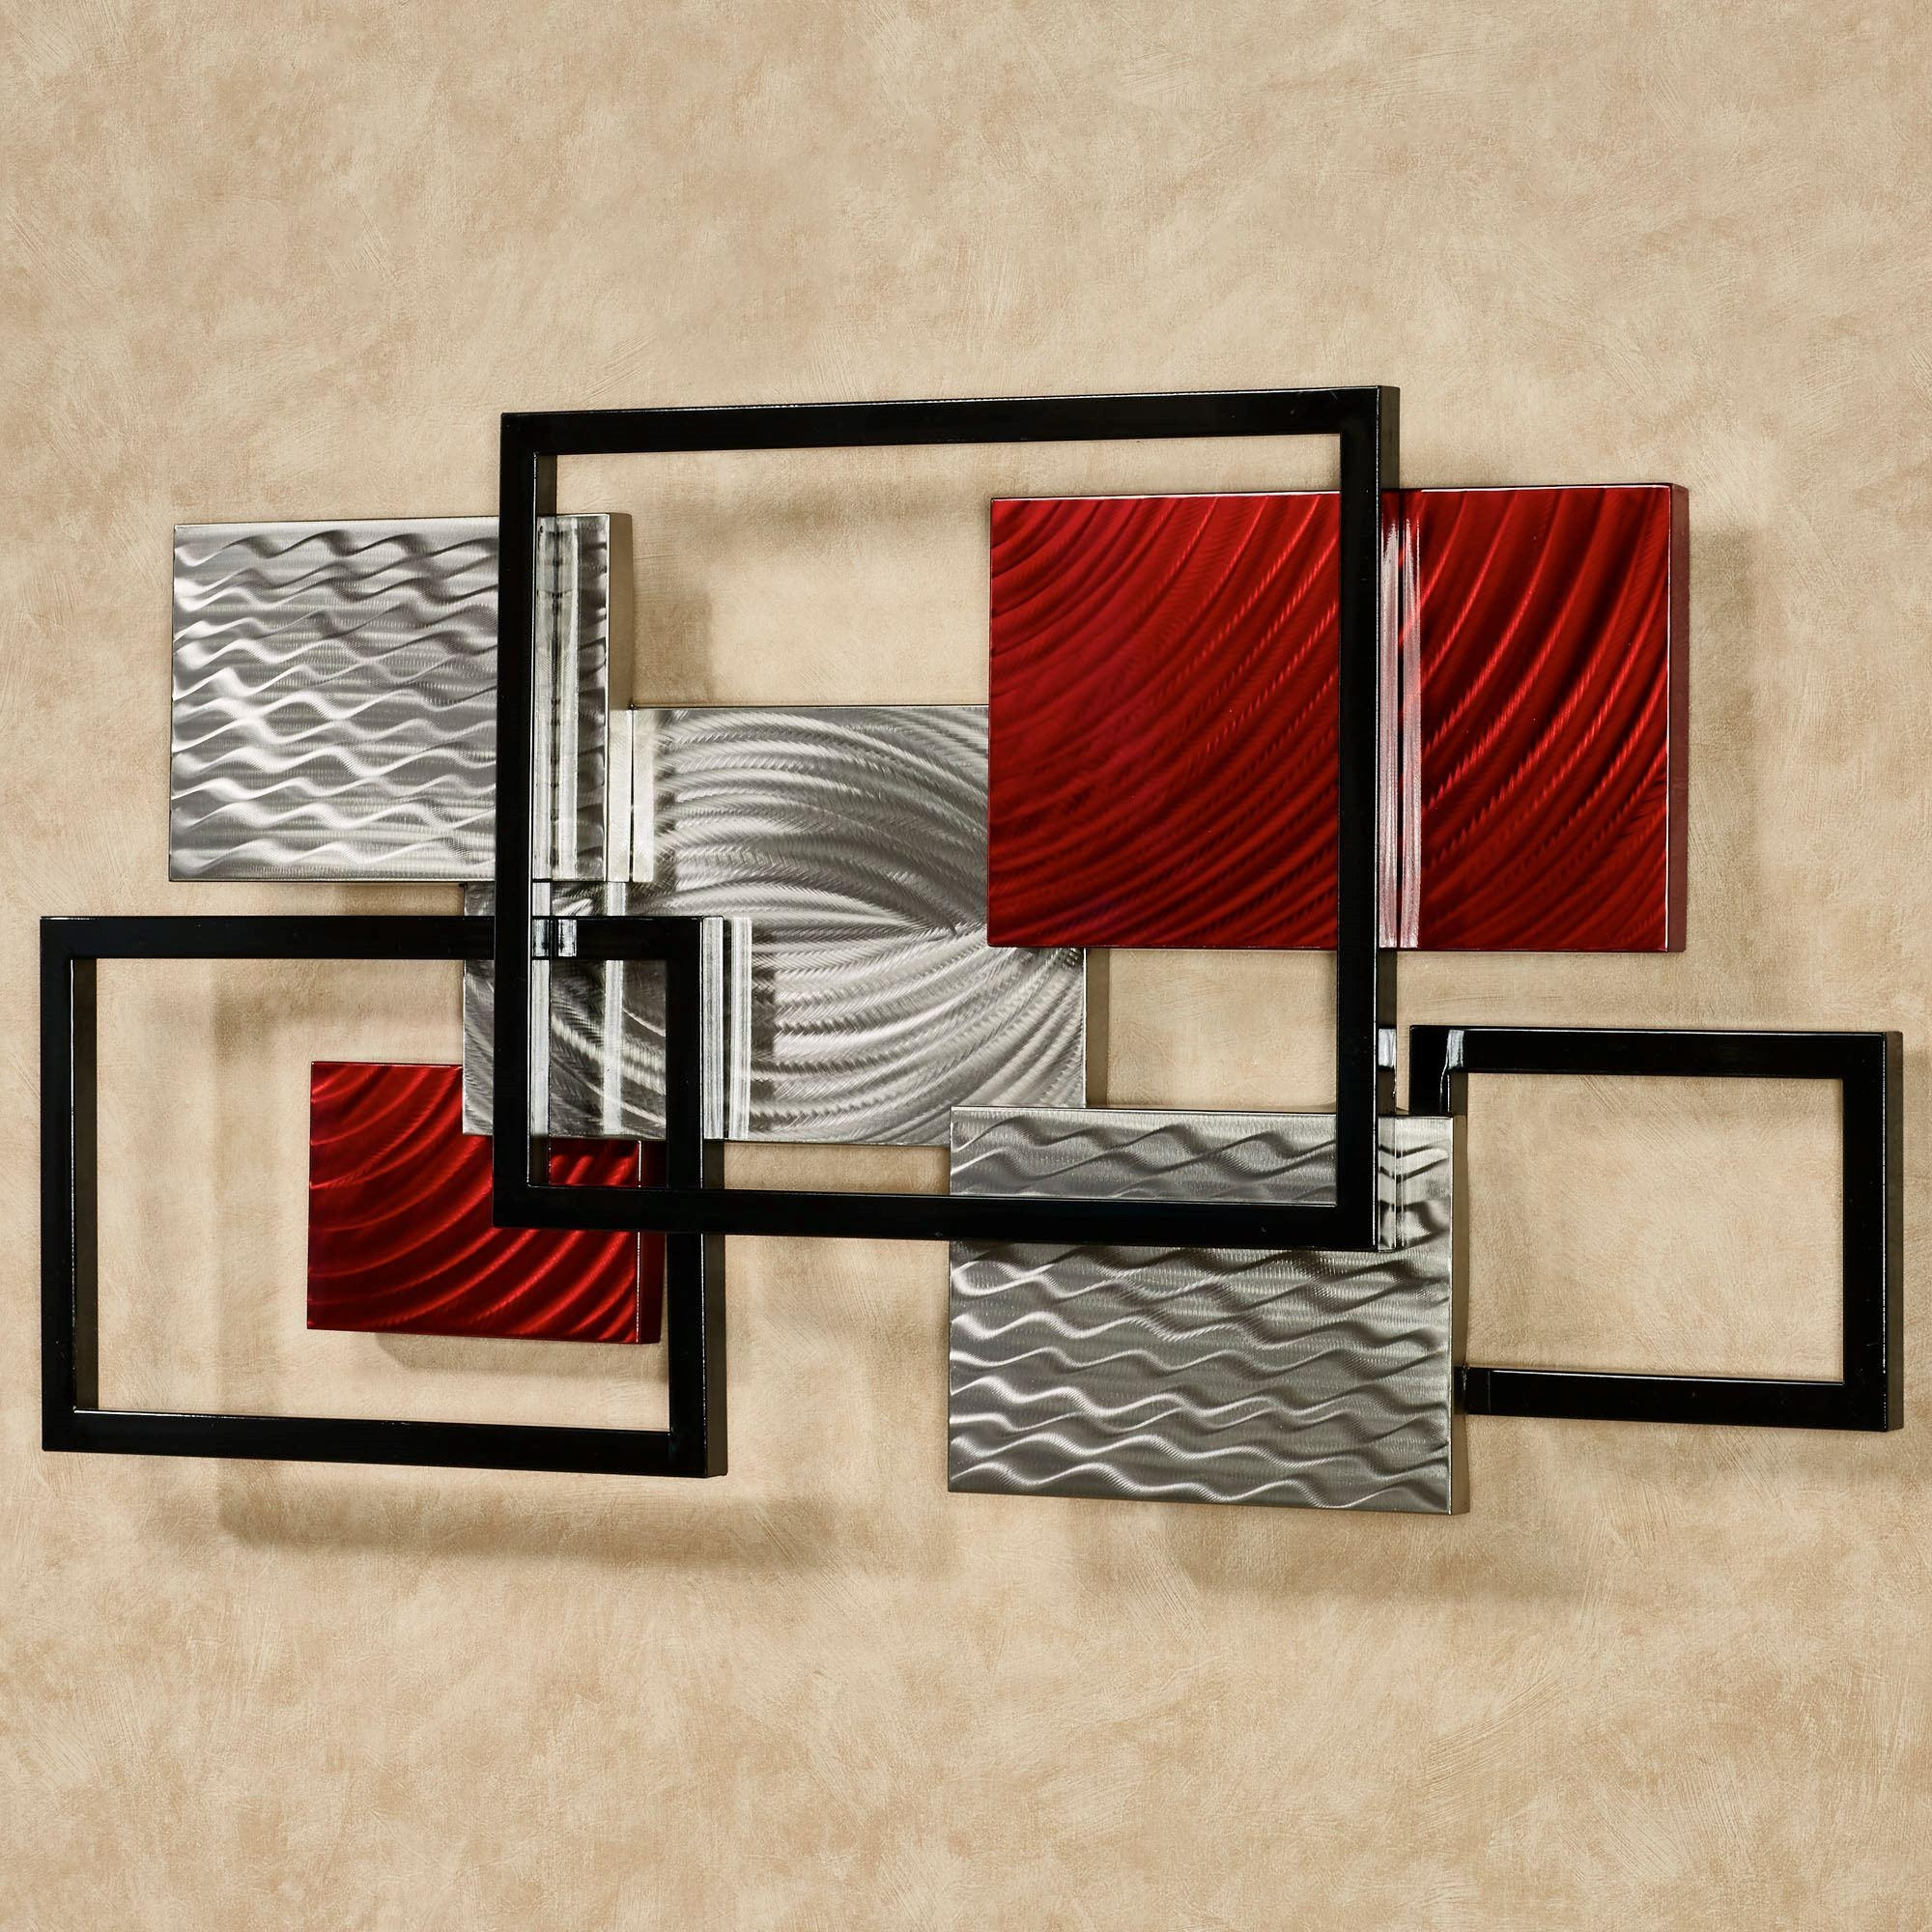 Framed Array Indoor Outdoor Abstract Metal Wall Sculpture Intended For Contemporary Metal Wall Art Sculpture (View 2 of 20)